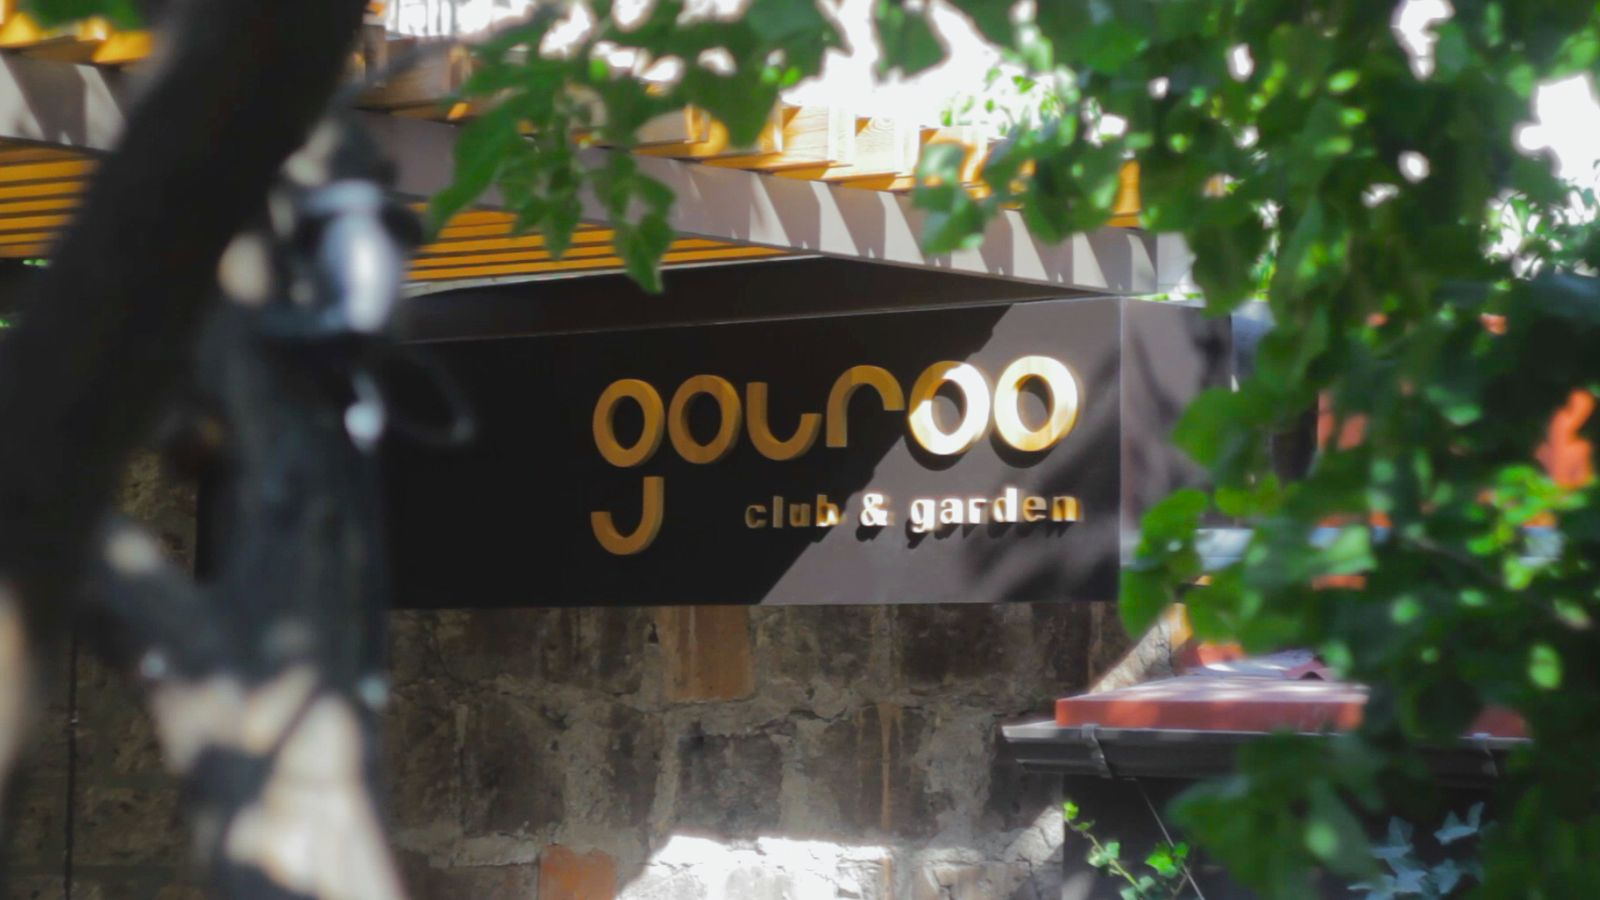 Gouroo Club & Garden 3d sign with a black background made of acrylic and aluminum for restaurant branding